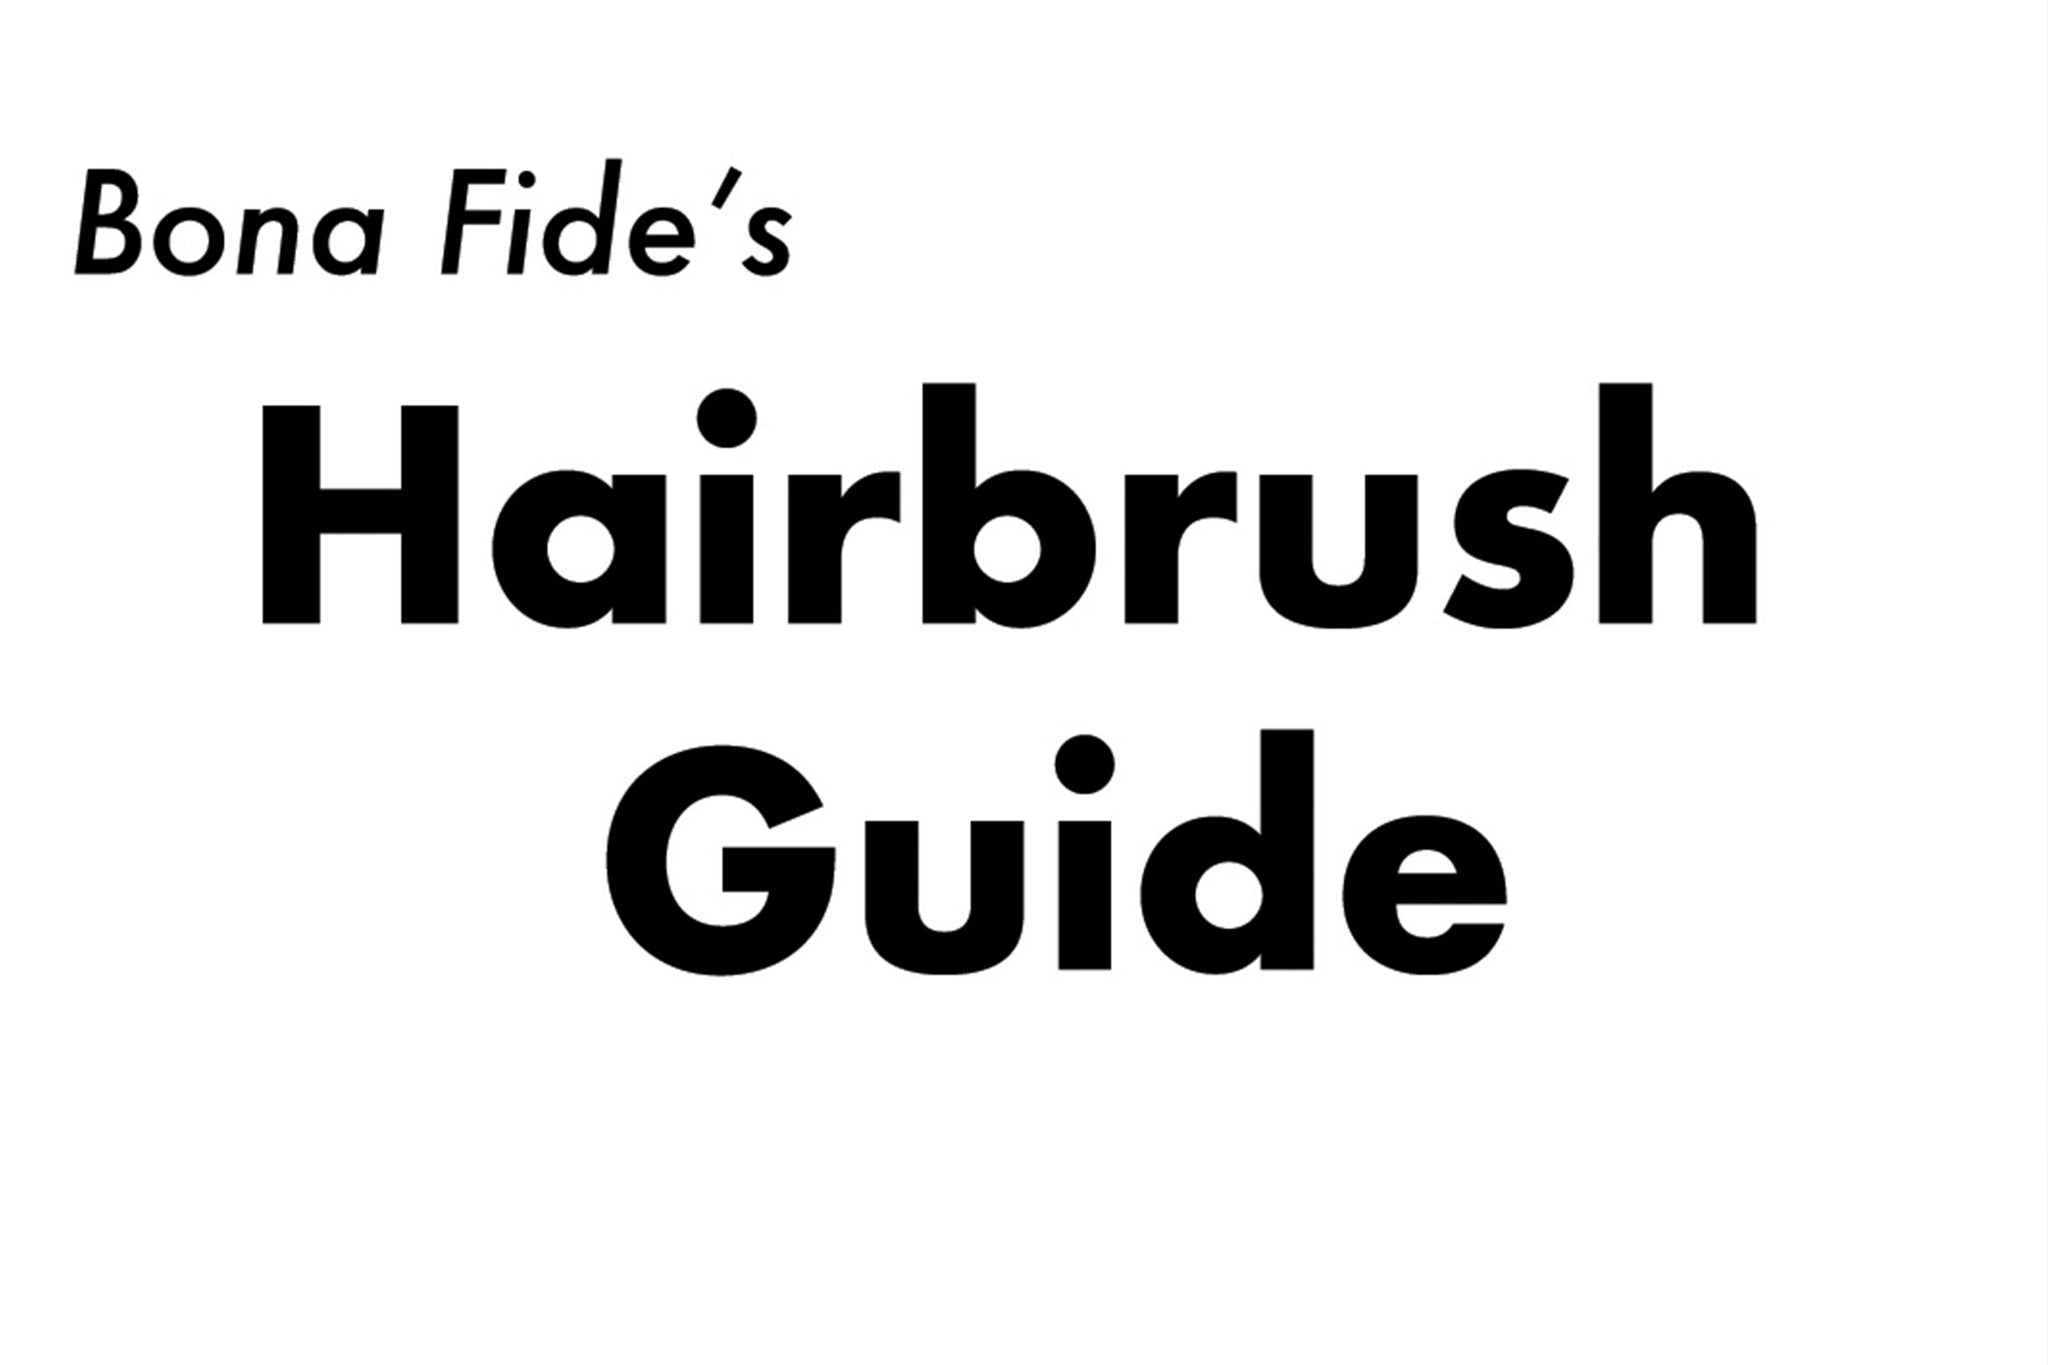 Bona Fide's Hairbrush Guide